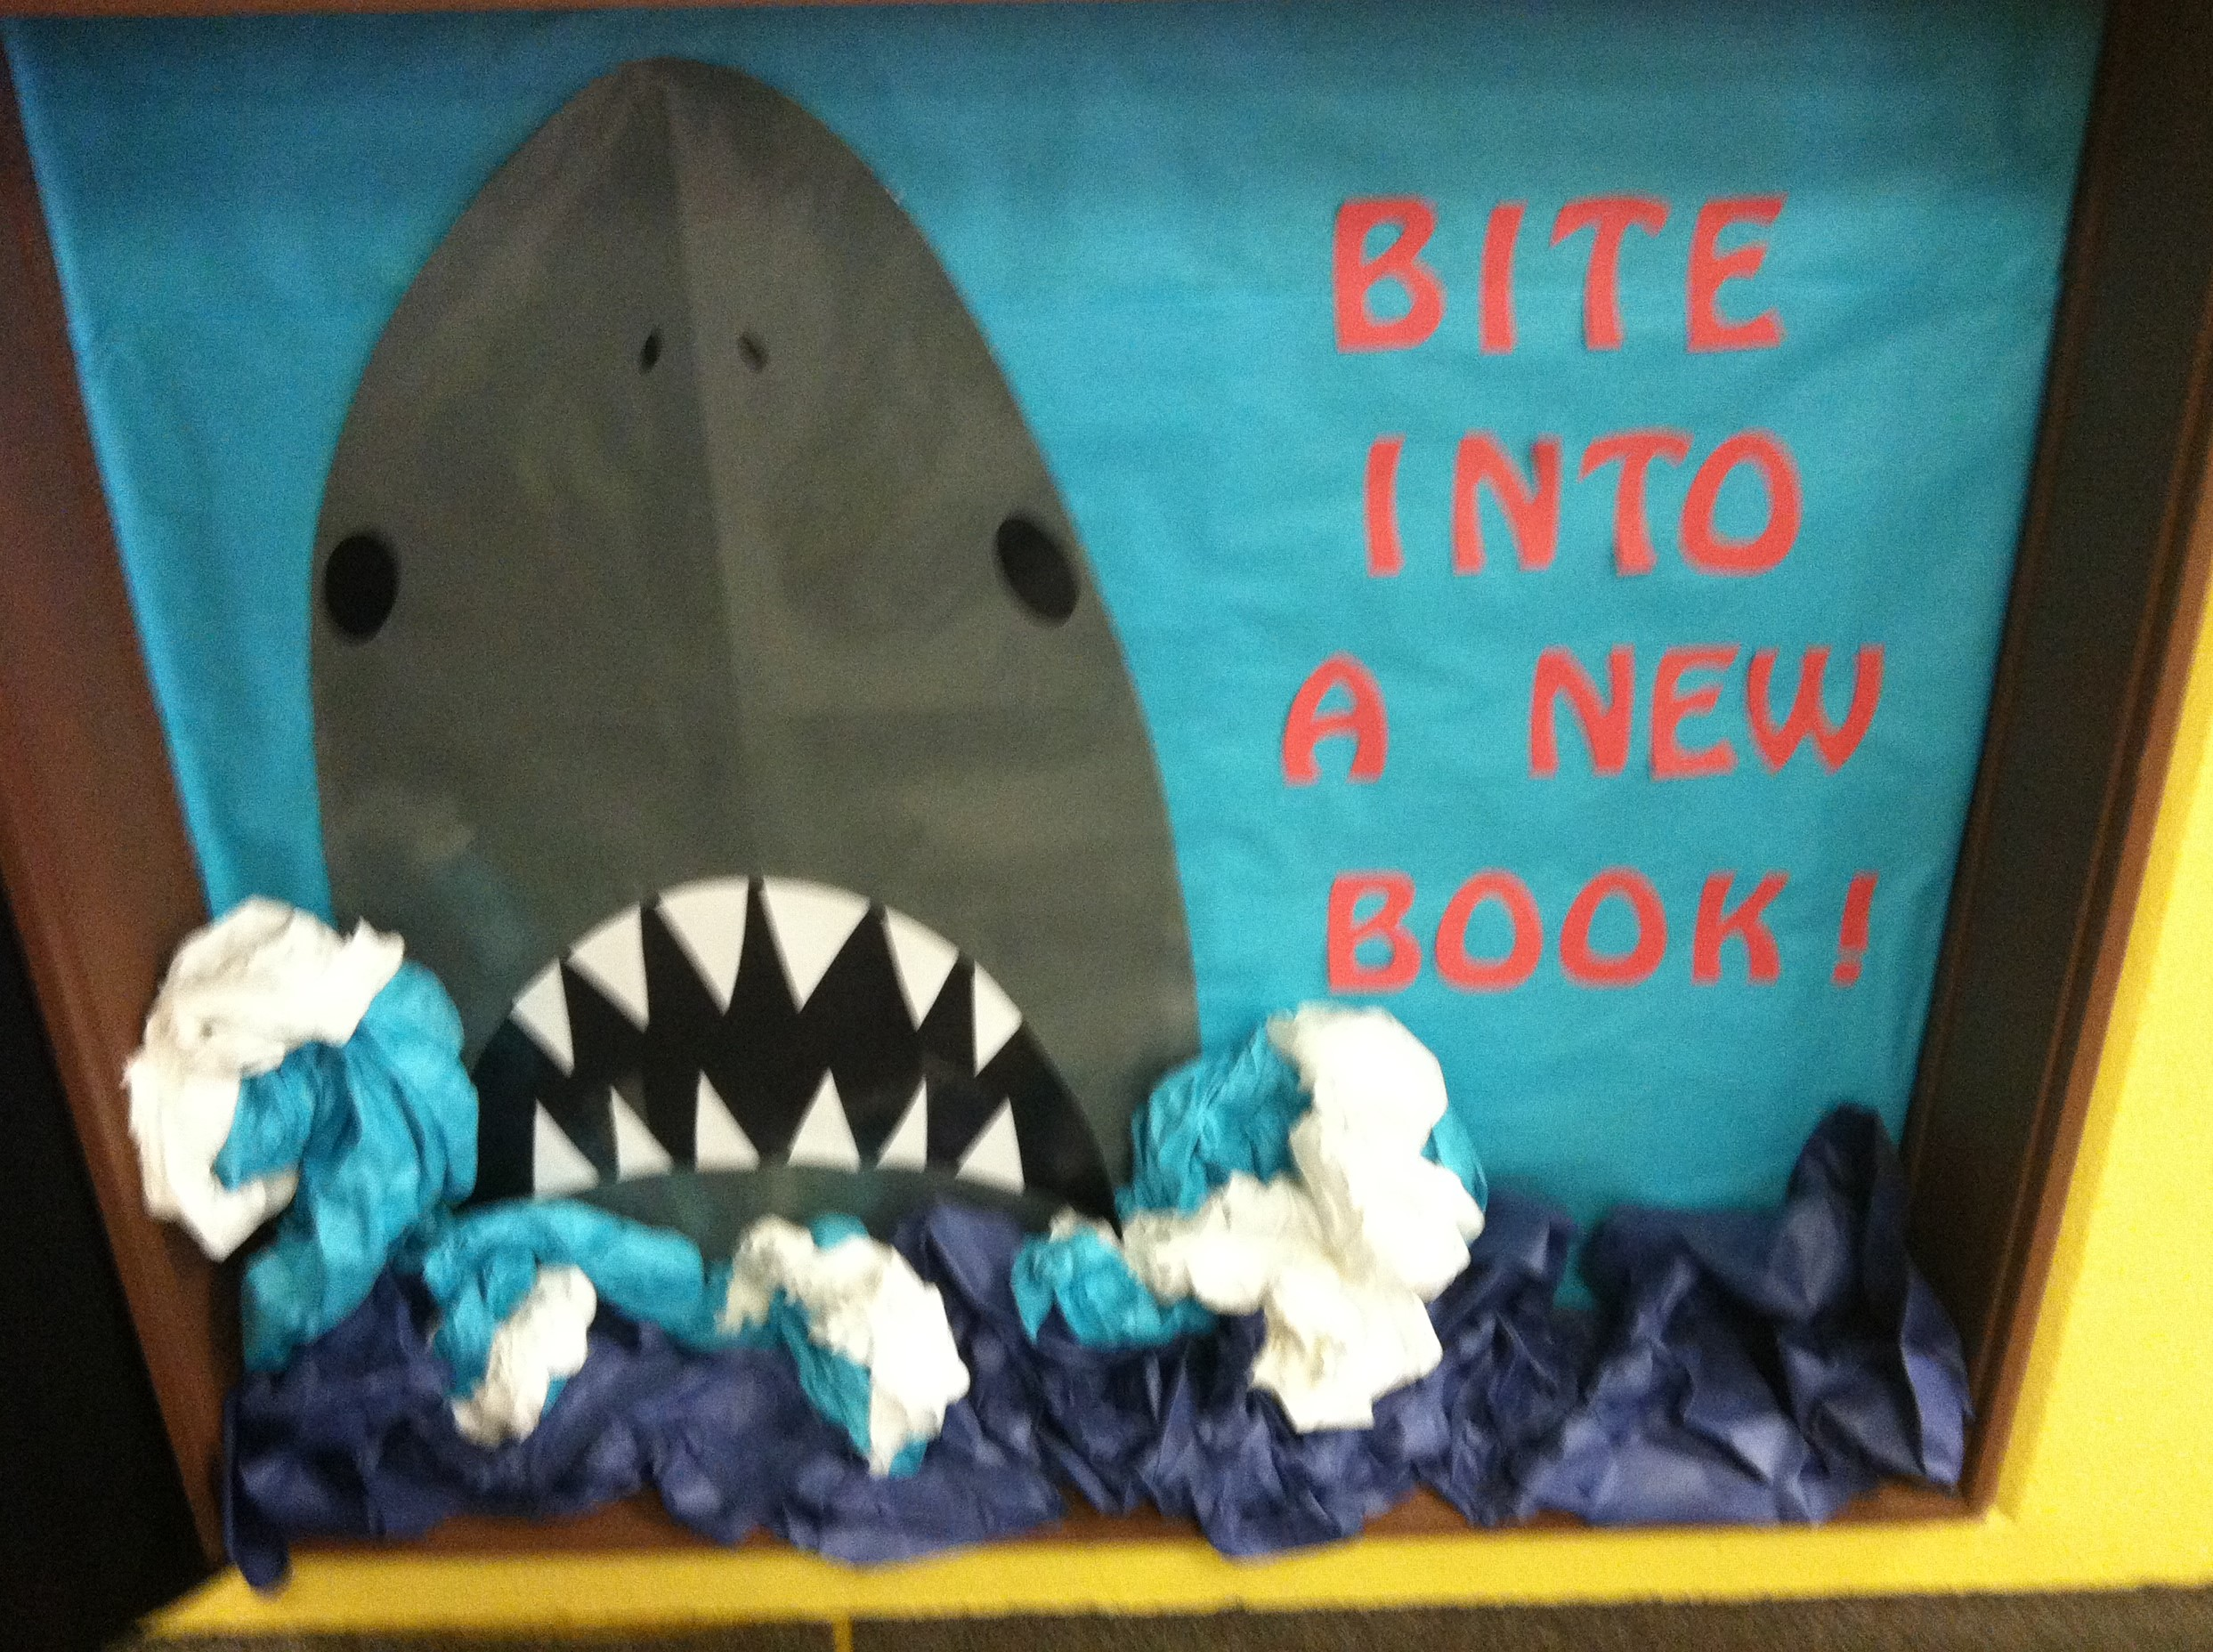 This isn't difficult to create at all. The water and waves are blue, light blue, and white paper that has been crumpled together. In fact, you can even use old paper from previous projects to create these looks. The three dimensions of the water really make it pop out. Students and teachers will appreciate the work you did to make such a wonderful bulletin board.